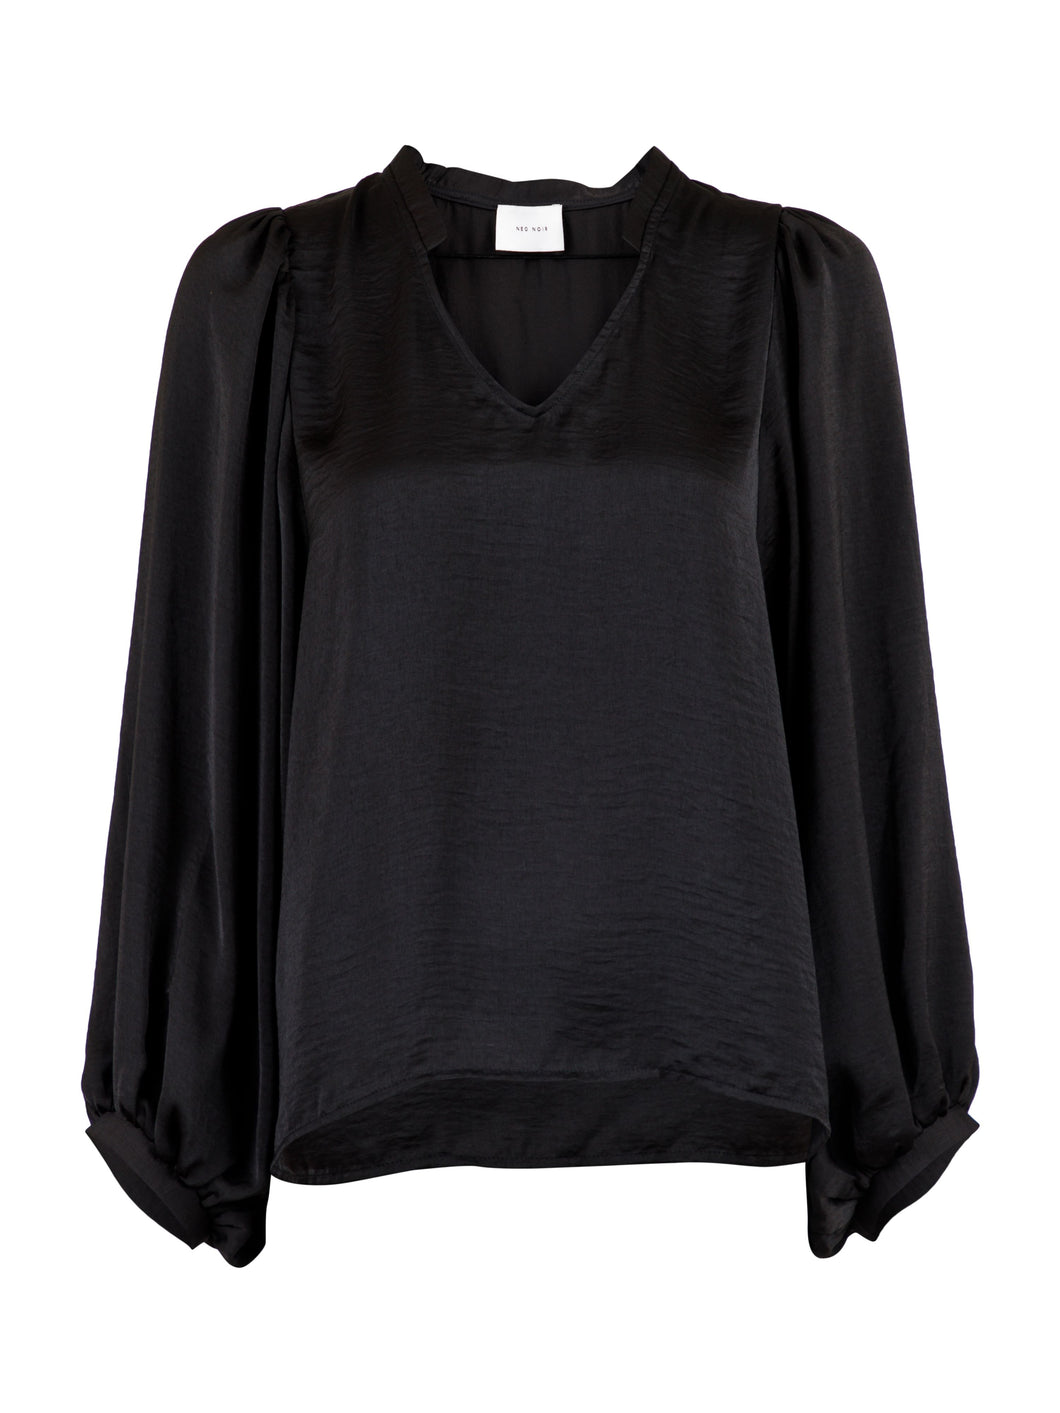 Solde Blouse (part of group)